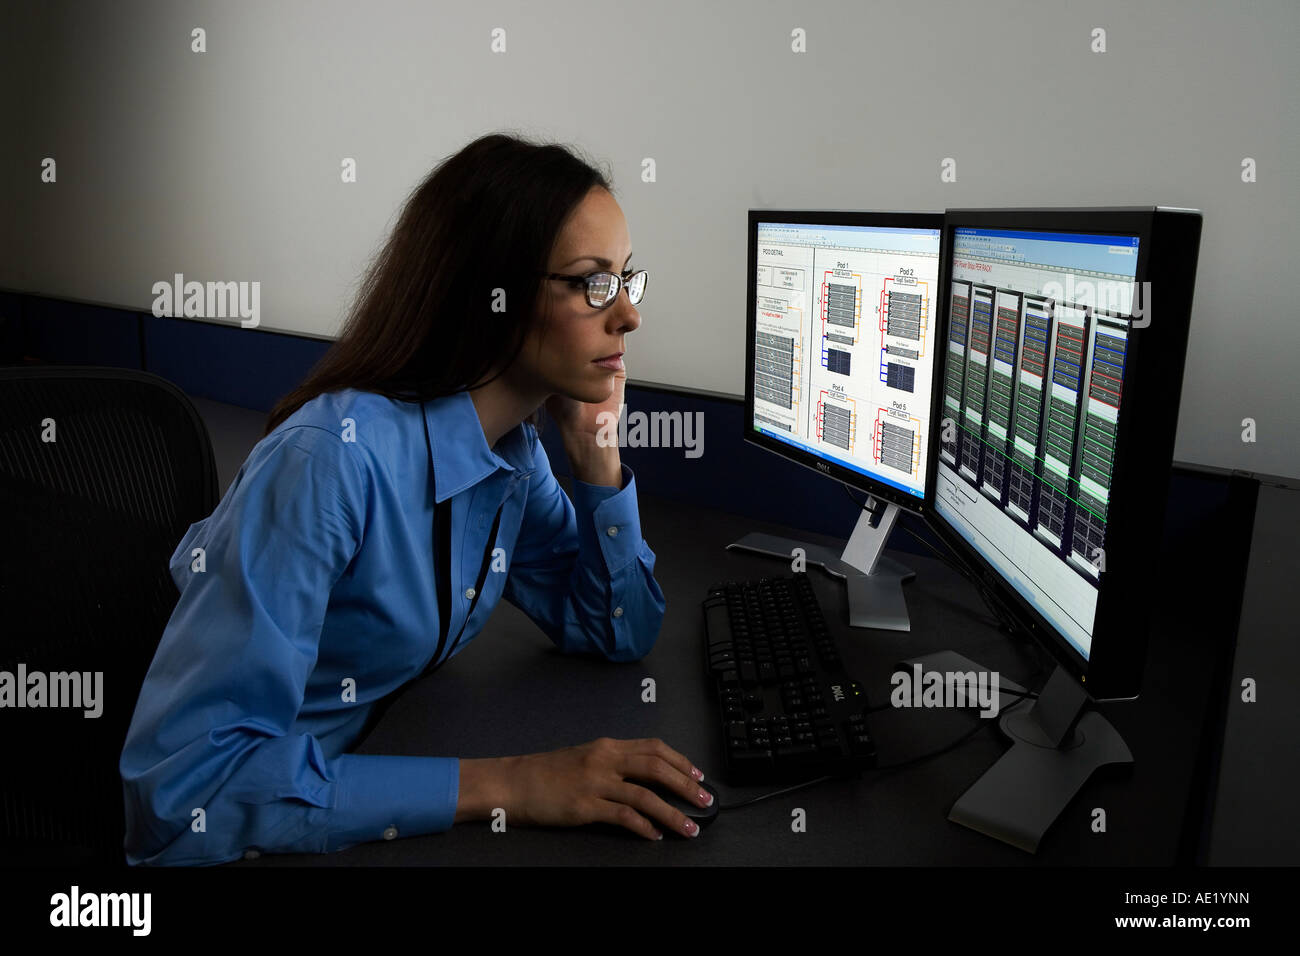 A woman sitting at a desk working on a two monitor computer system. Stock Photo